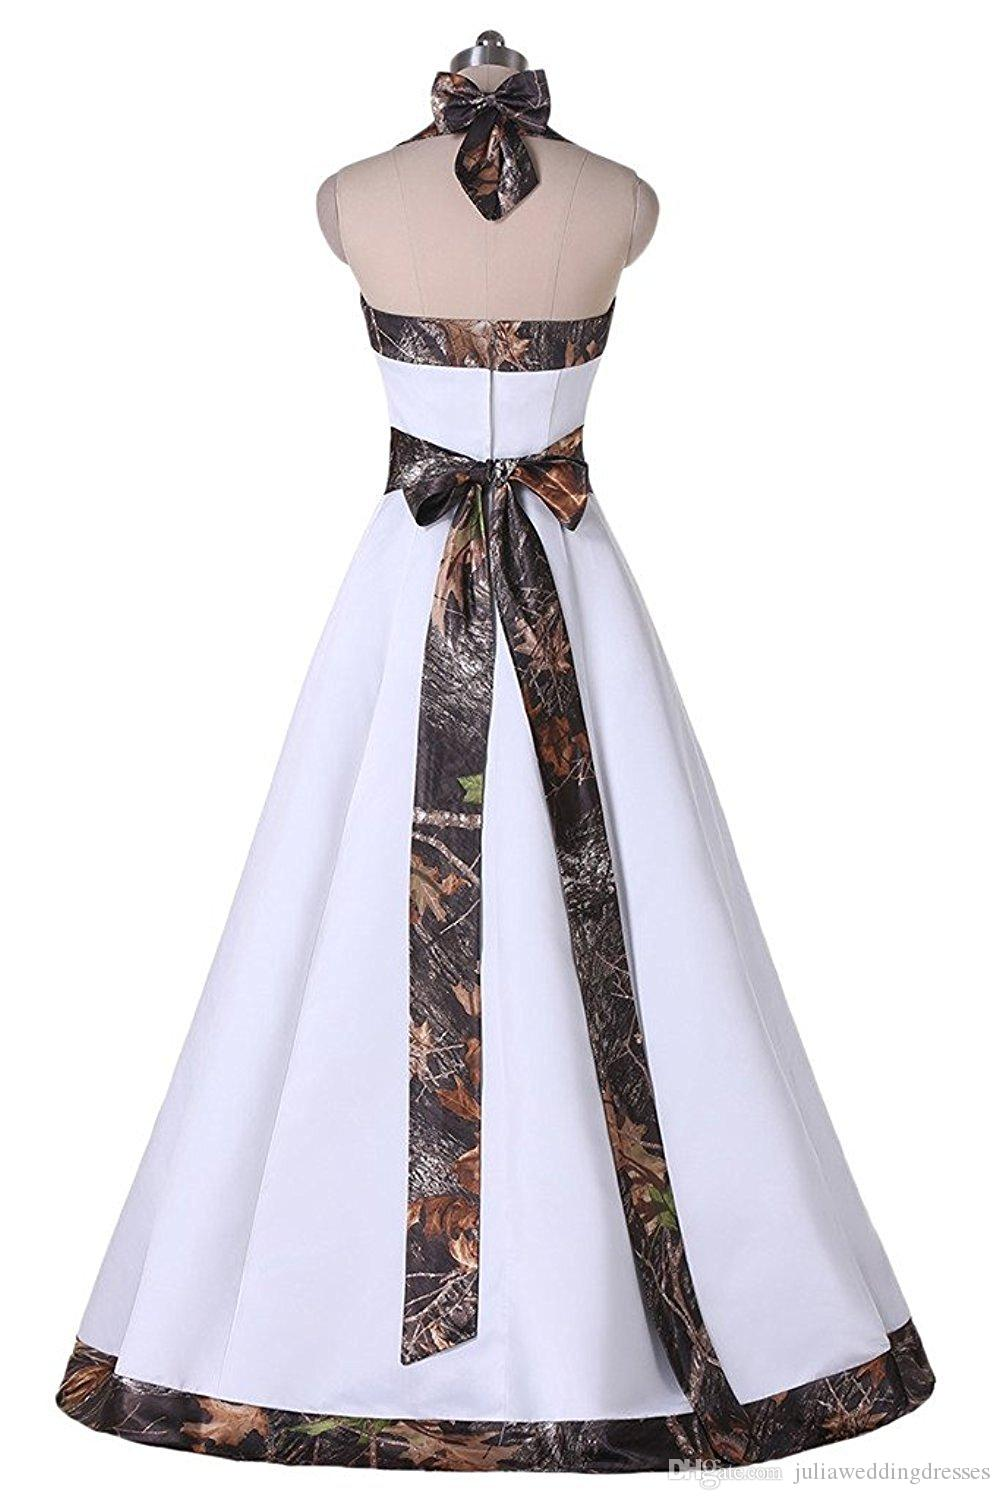 2017 New Camo Wedding Dresses Sweetheart Appliques A-Line With Beading Chiffon Plus Size Camouflage Wedding Party Bridal Gowns BW118